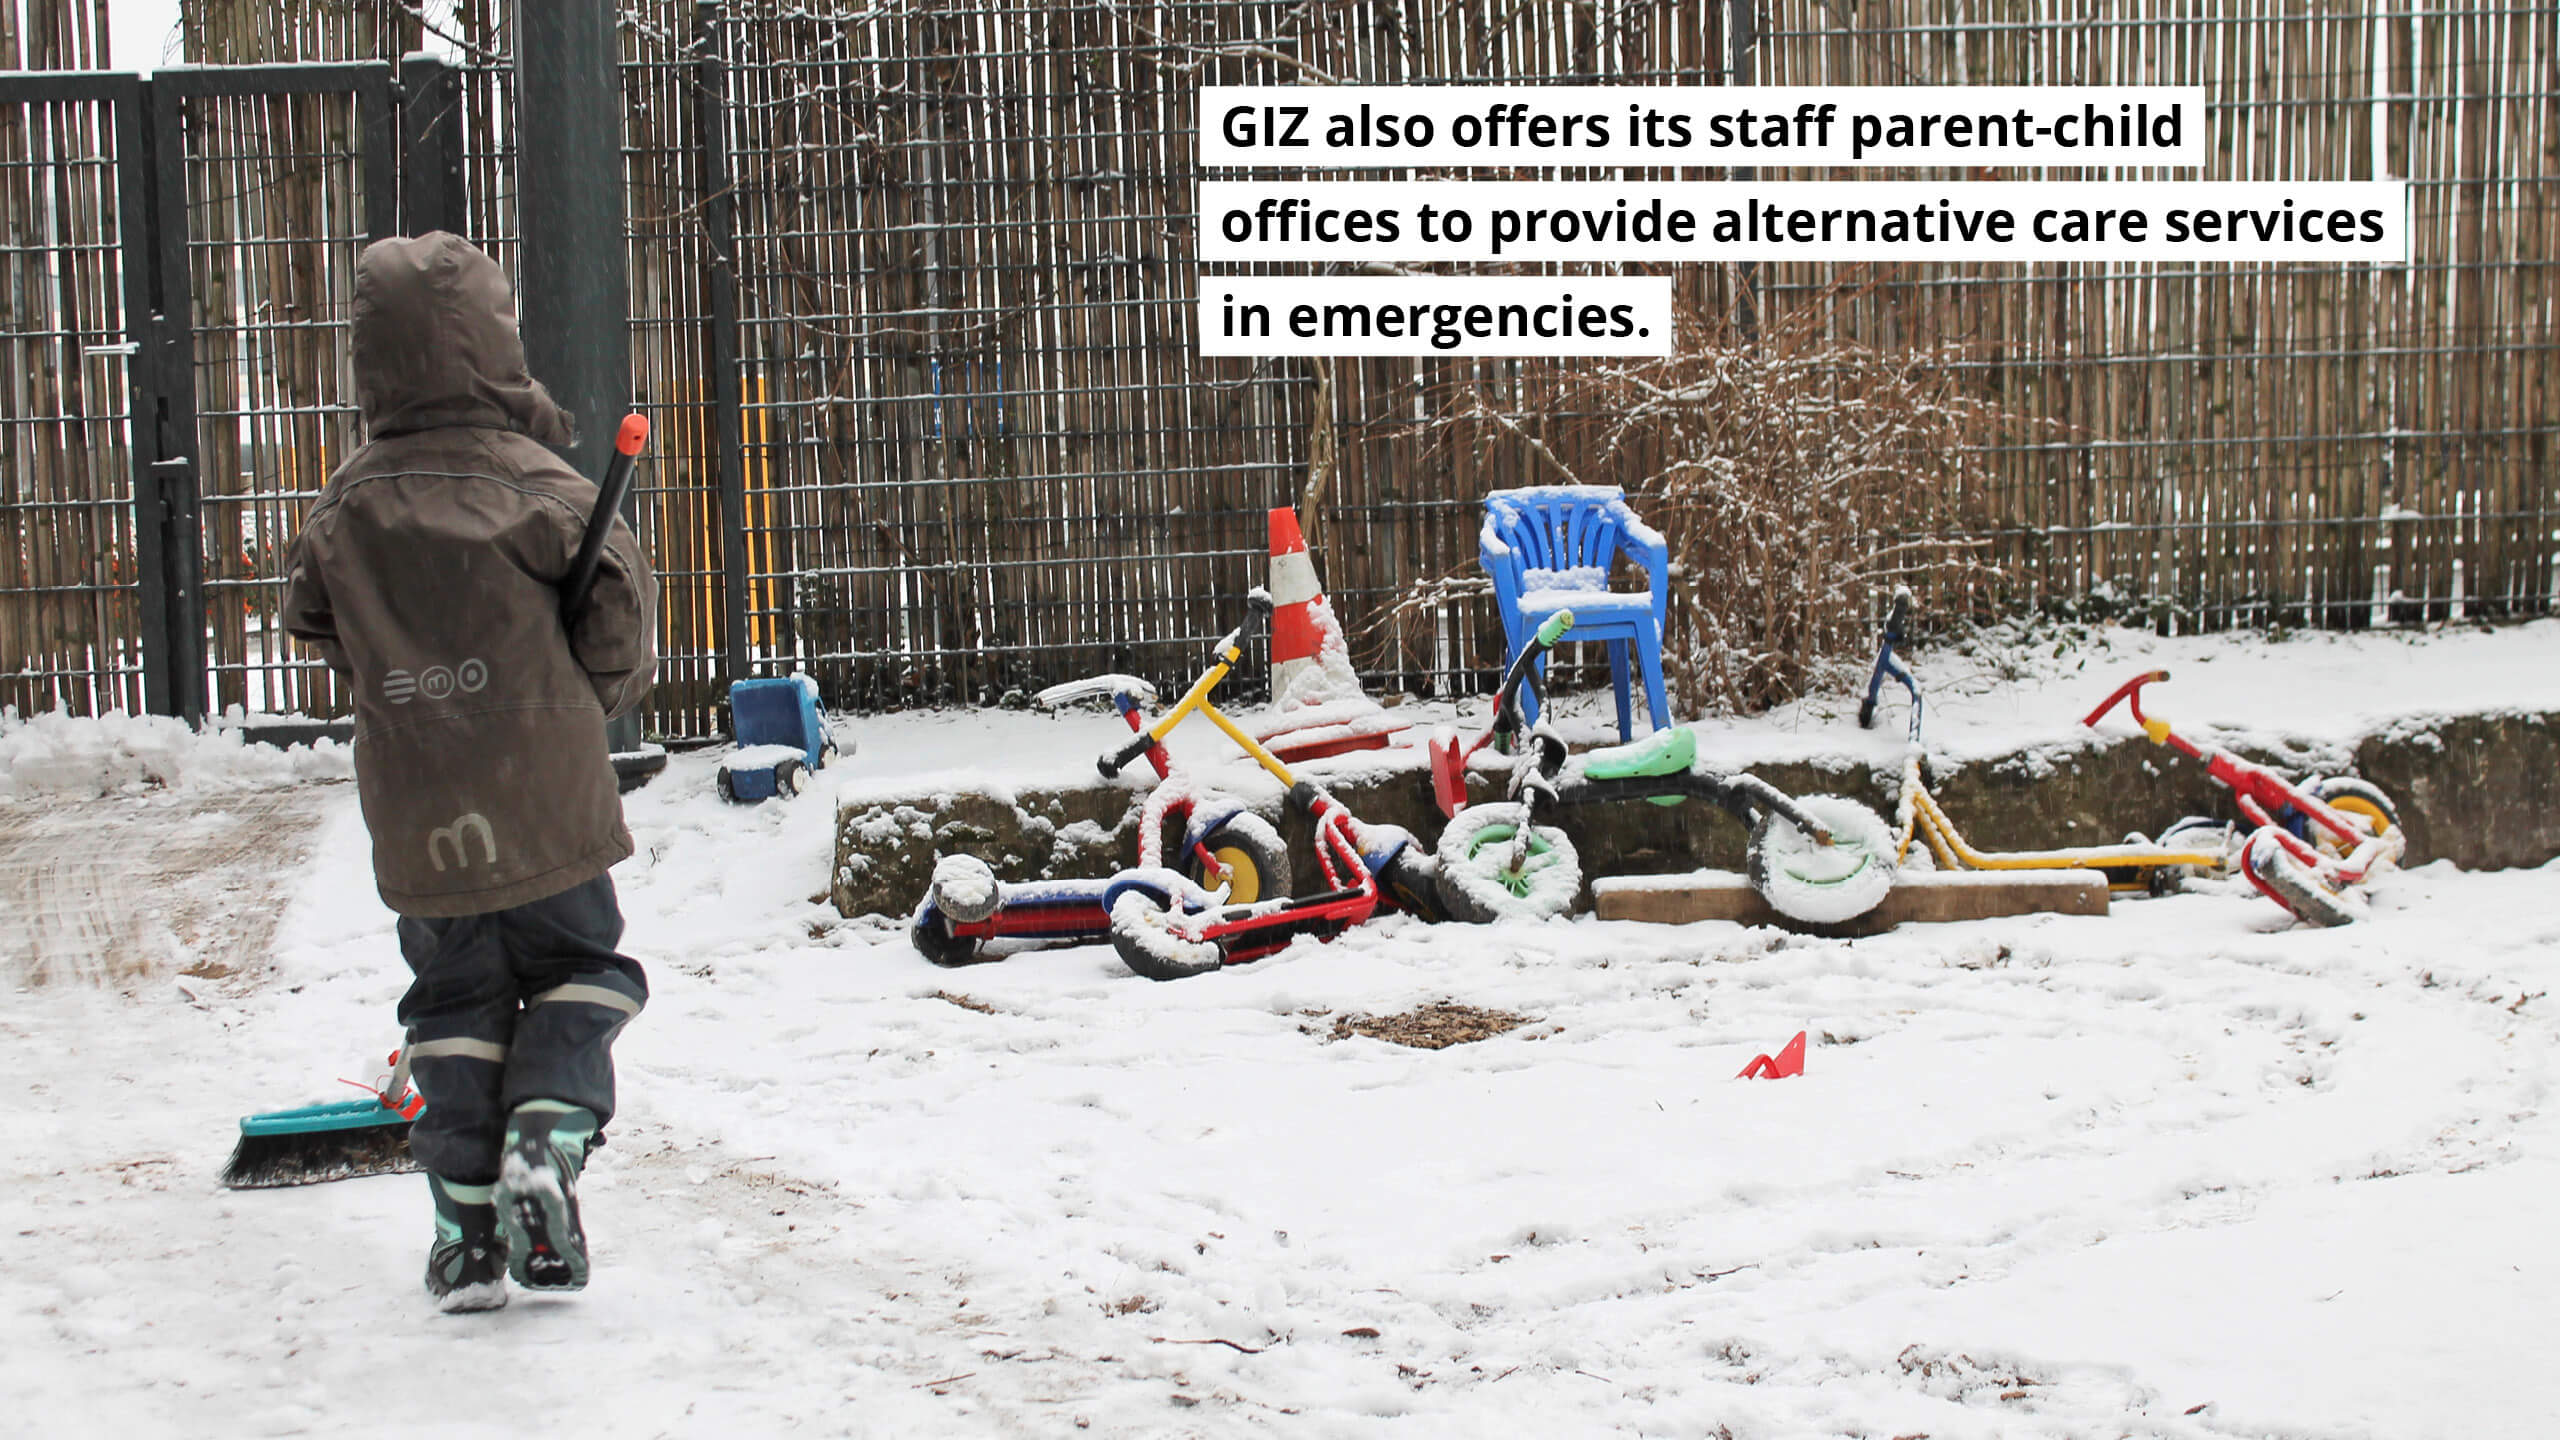 GIZ also offers its staff parent-child offices to provide alternative care services.